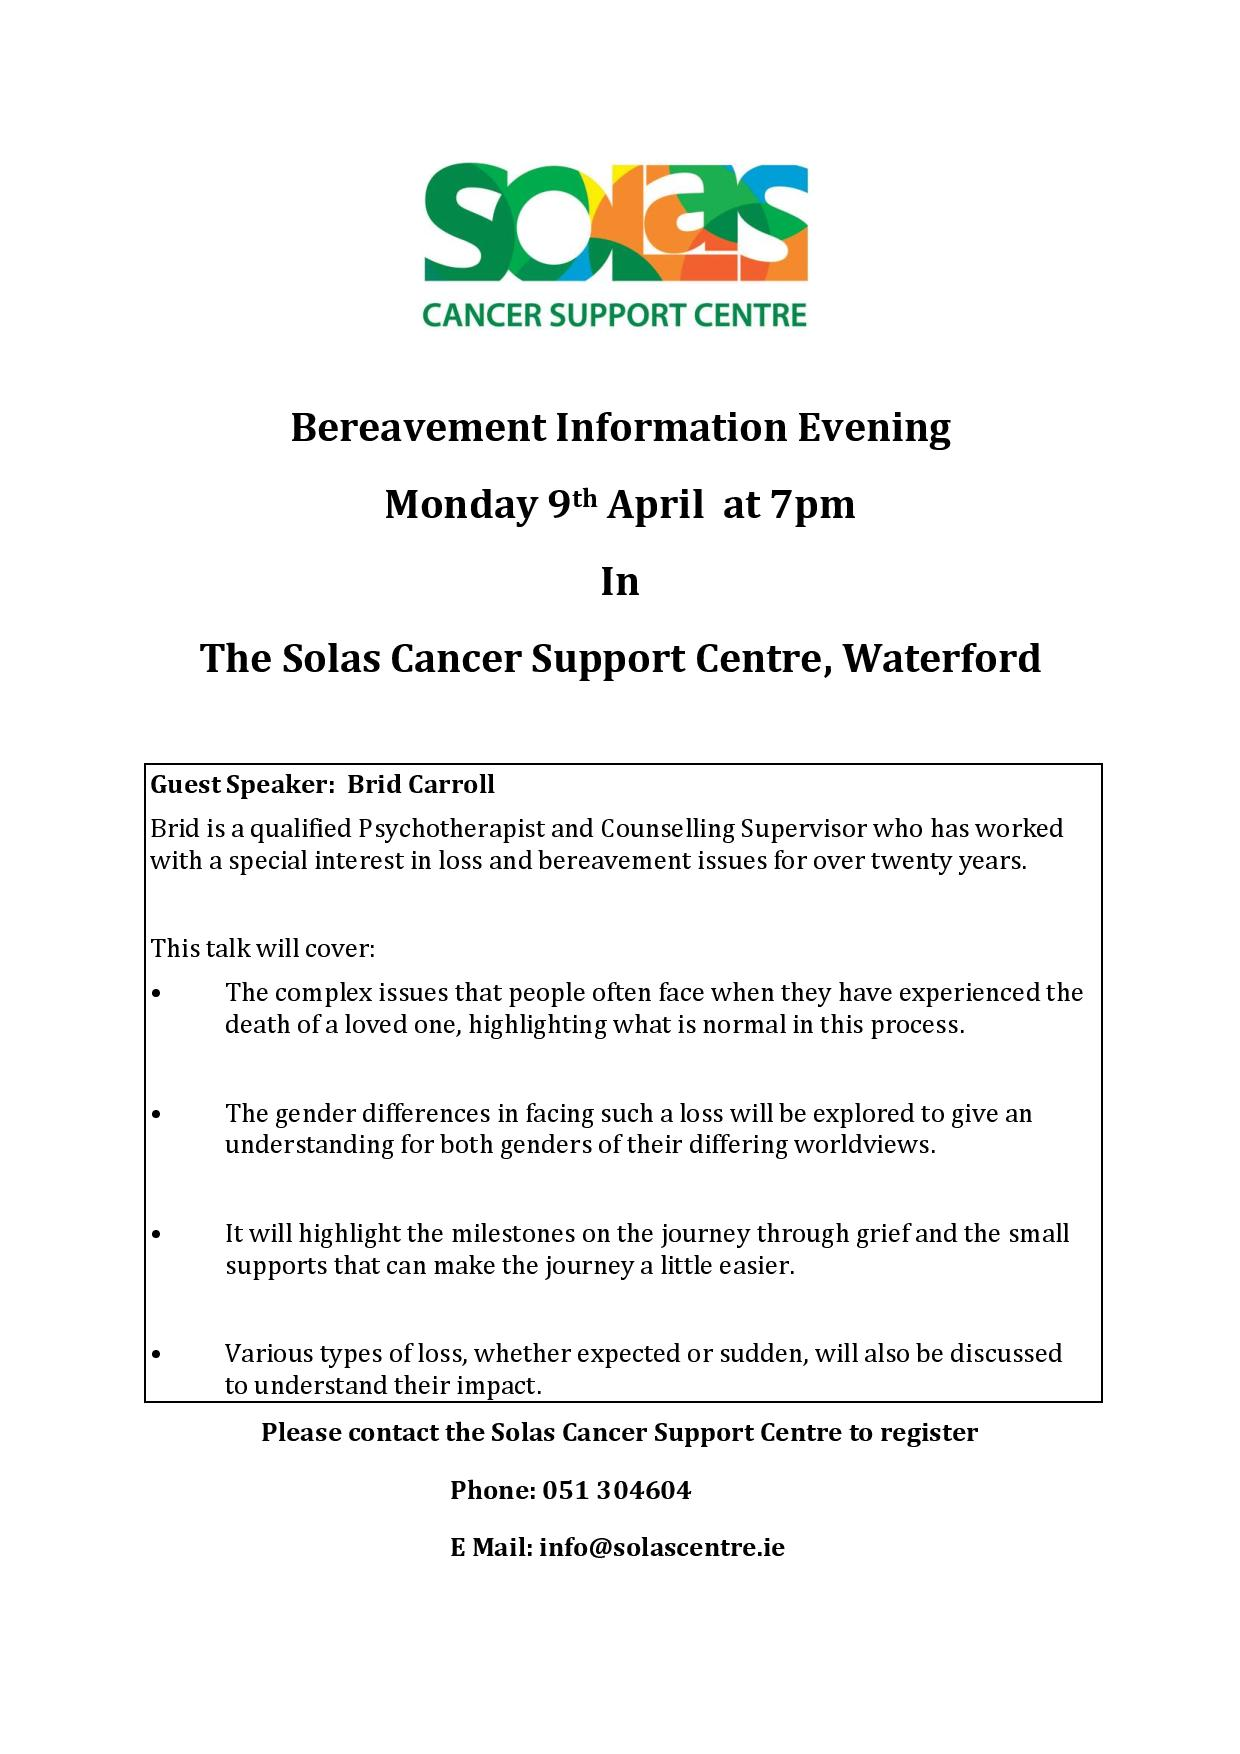 Bereavement Information Evening - 9th April 2018.docx - updated-page-001